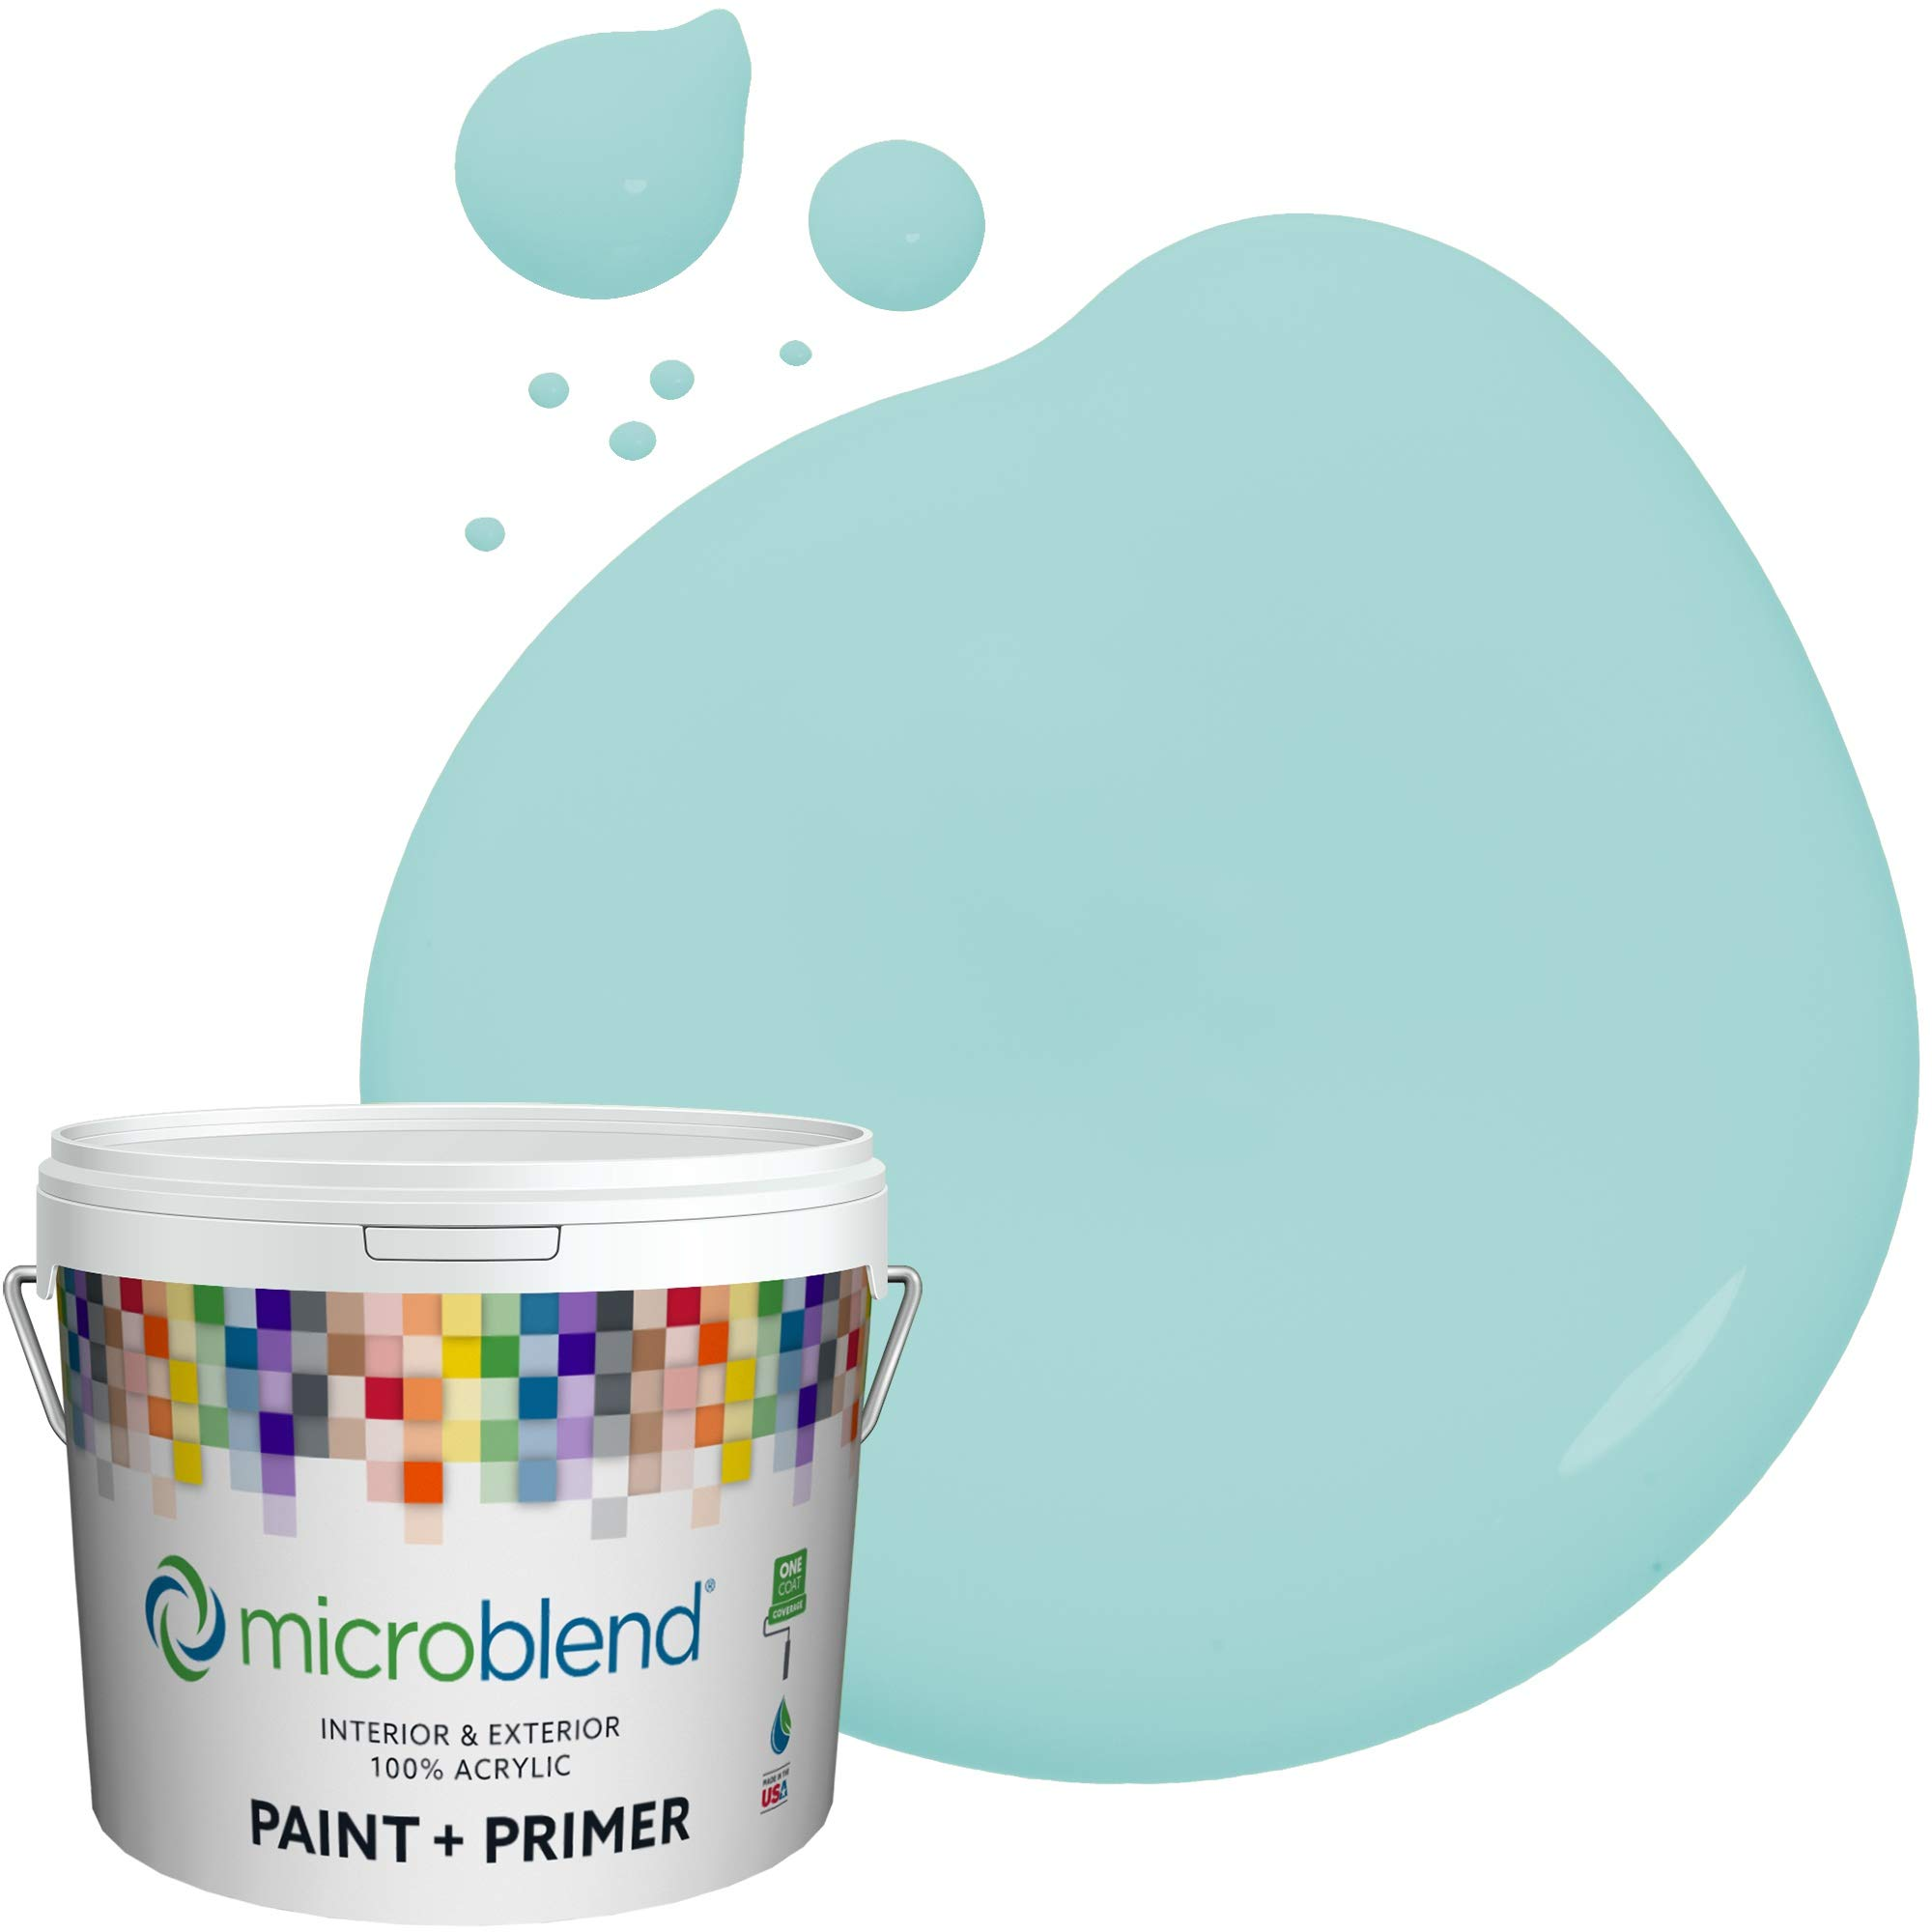 Microblend Interior Paint + Primer, Surf's Up, Eggshell Sheen, 1 Gallon, Custom Made, Premium Quality One Coat Hide & Washable Paint (73220-2-M0422B3)